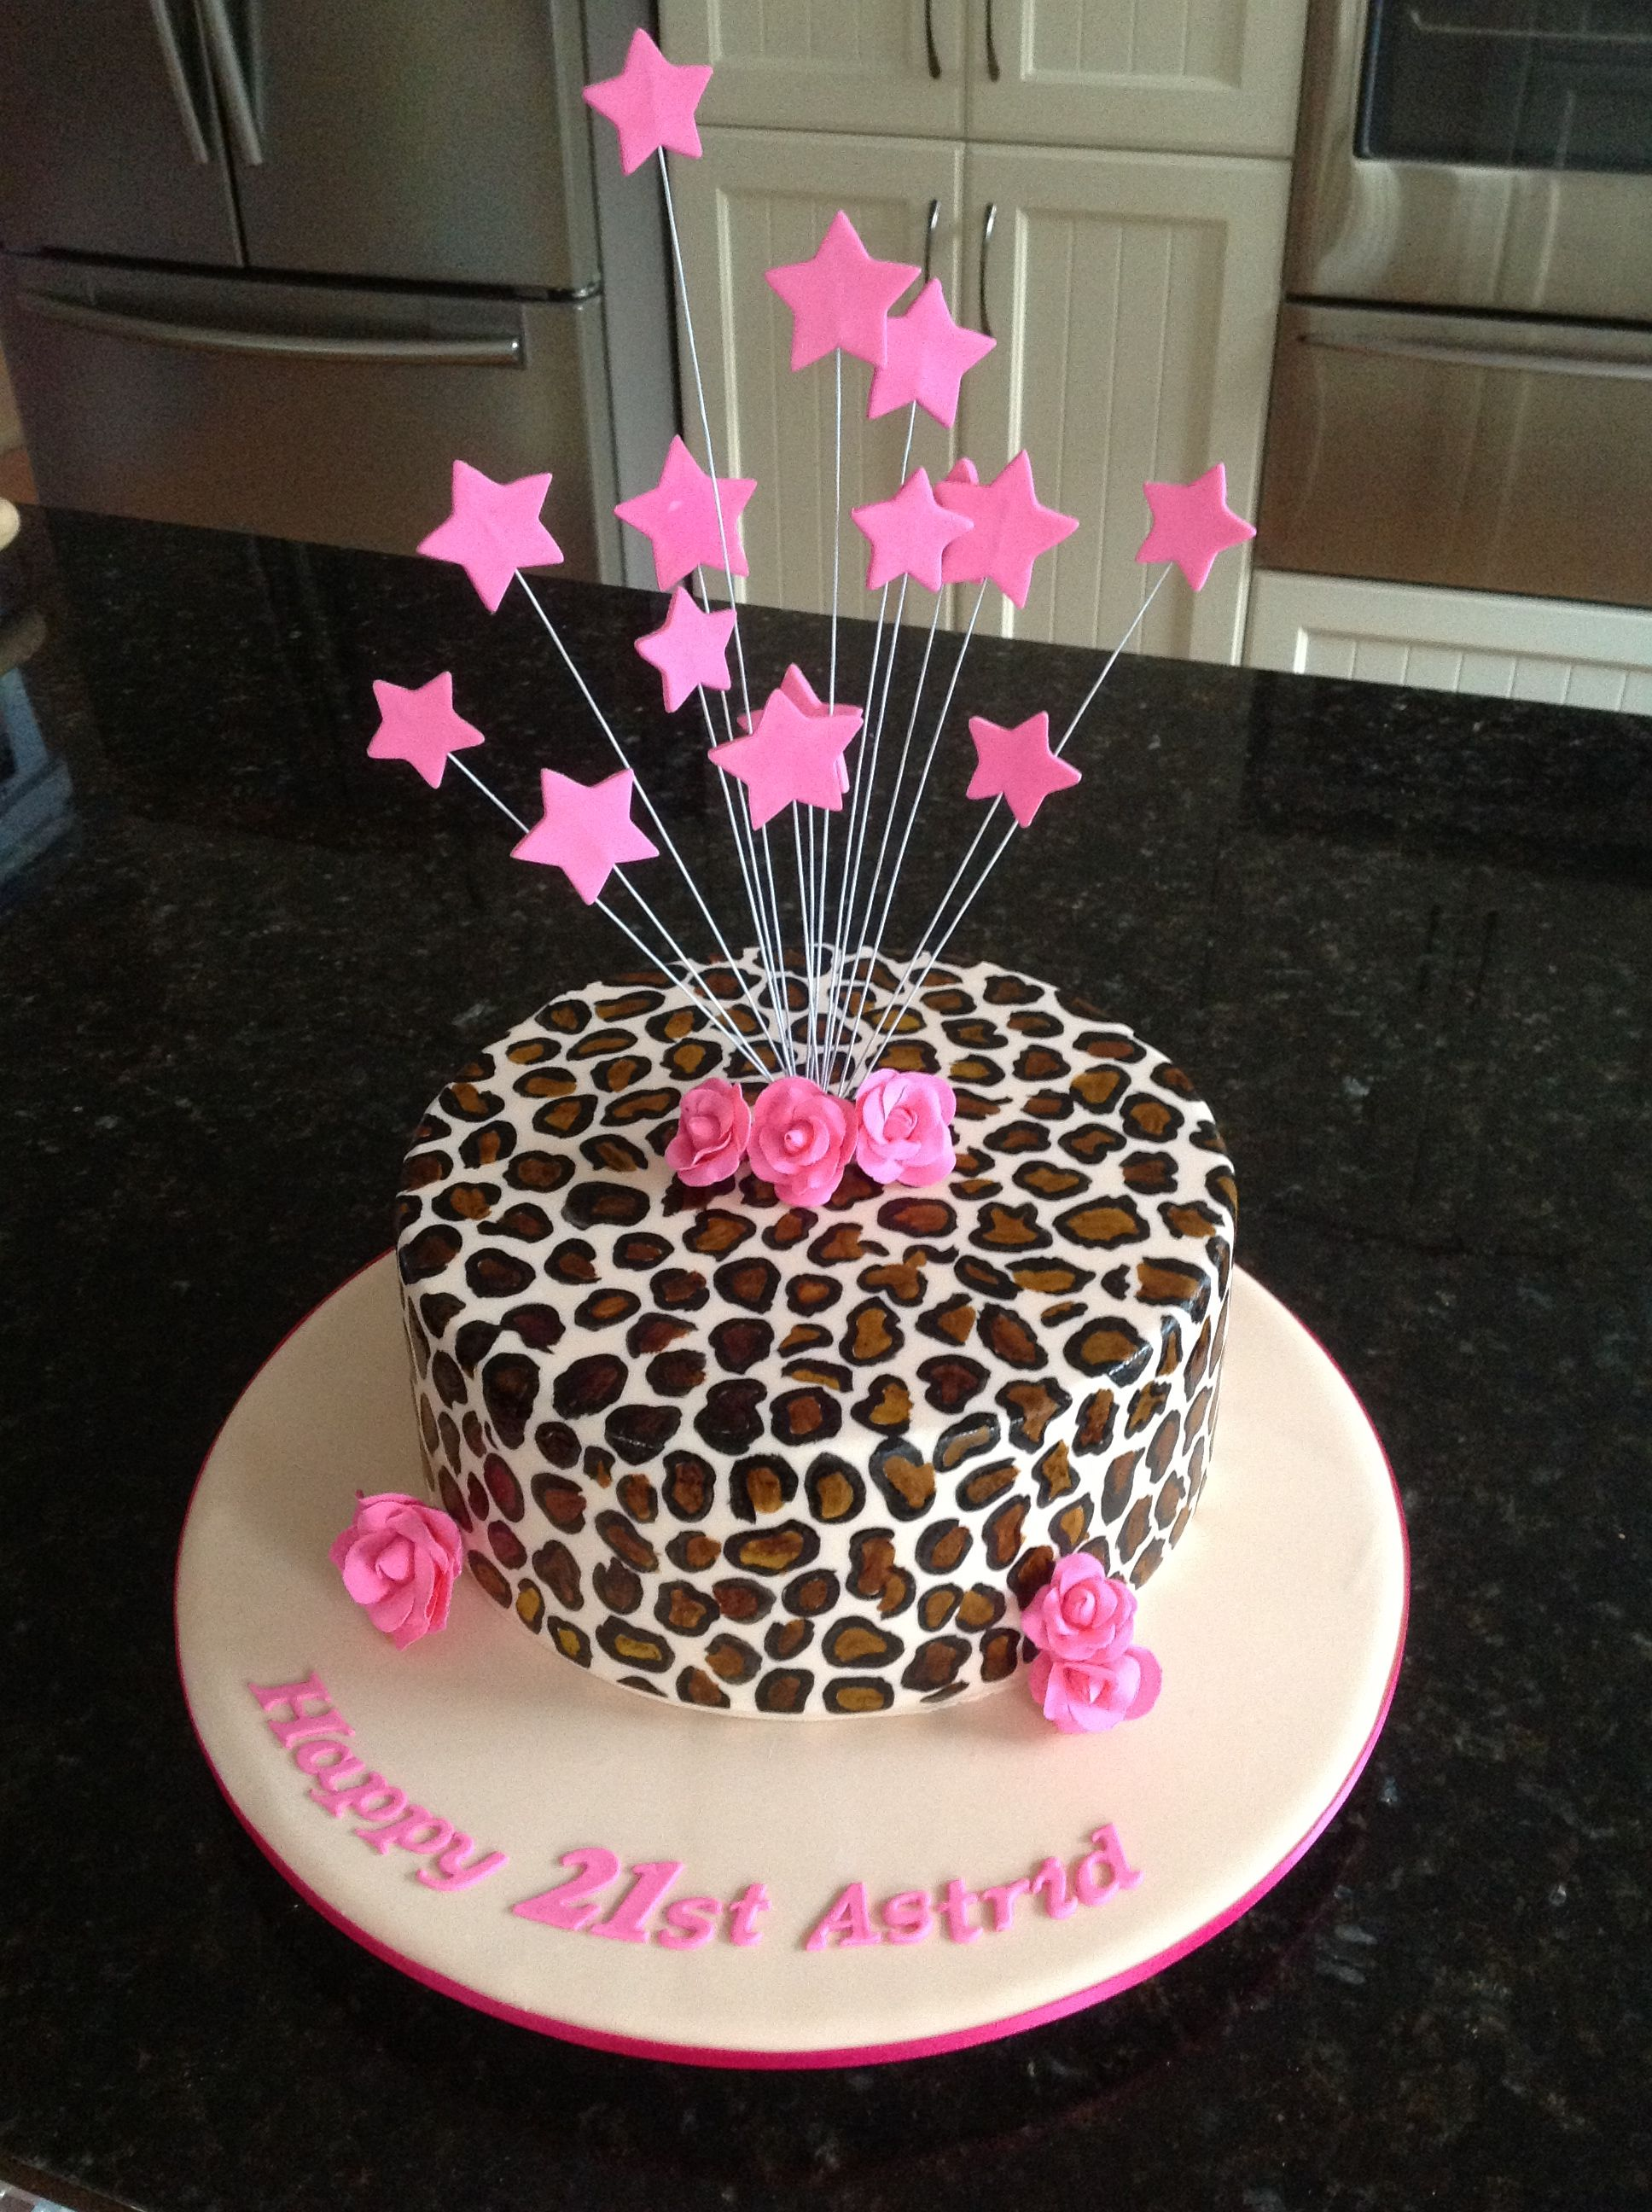 21st Birthday Cake In Leopard Print Airplane Bottles Instead Of